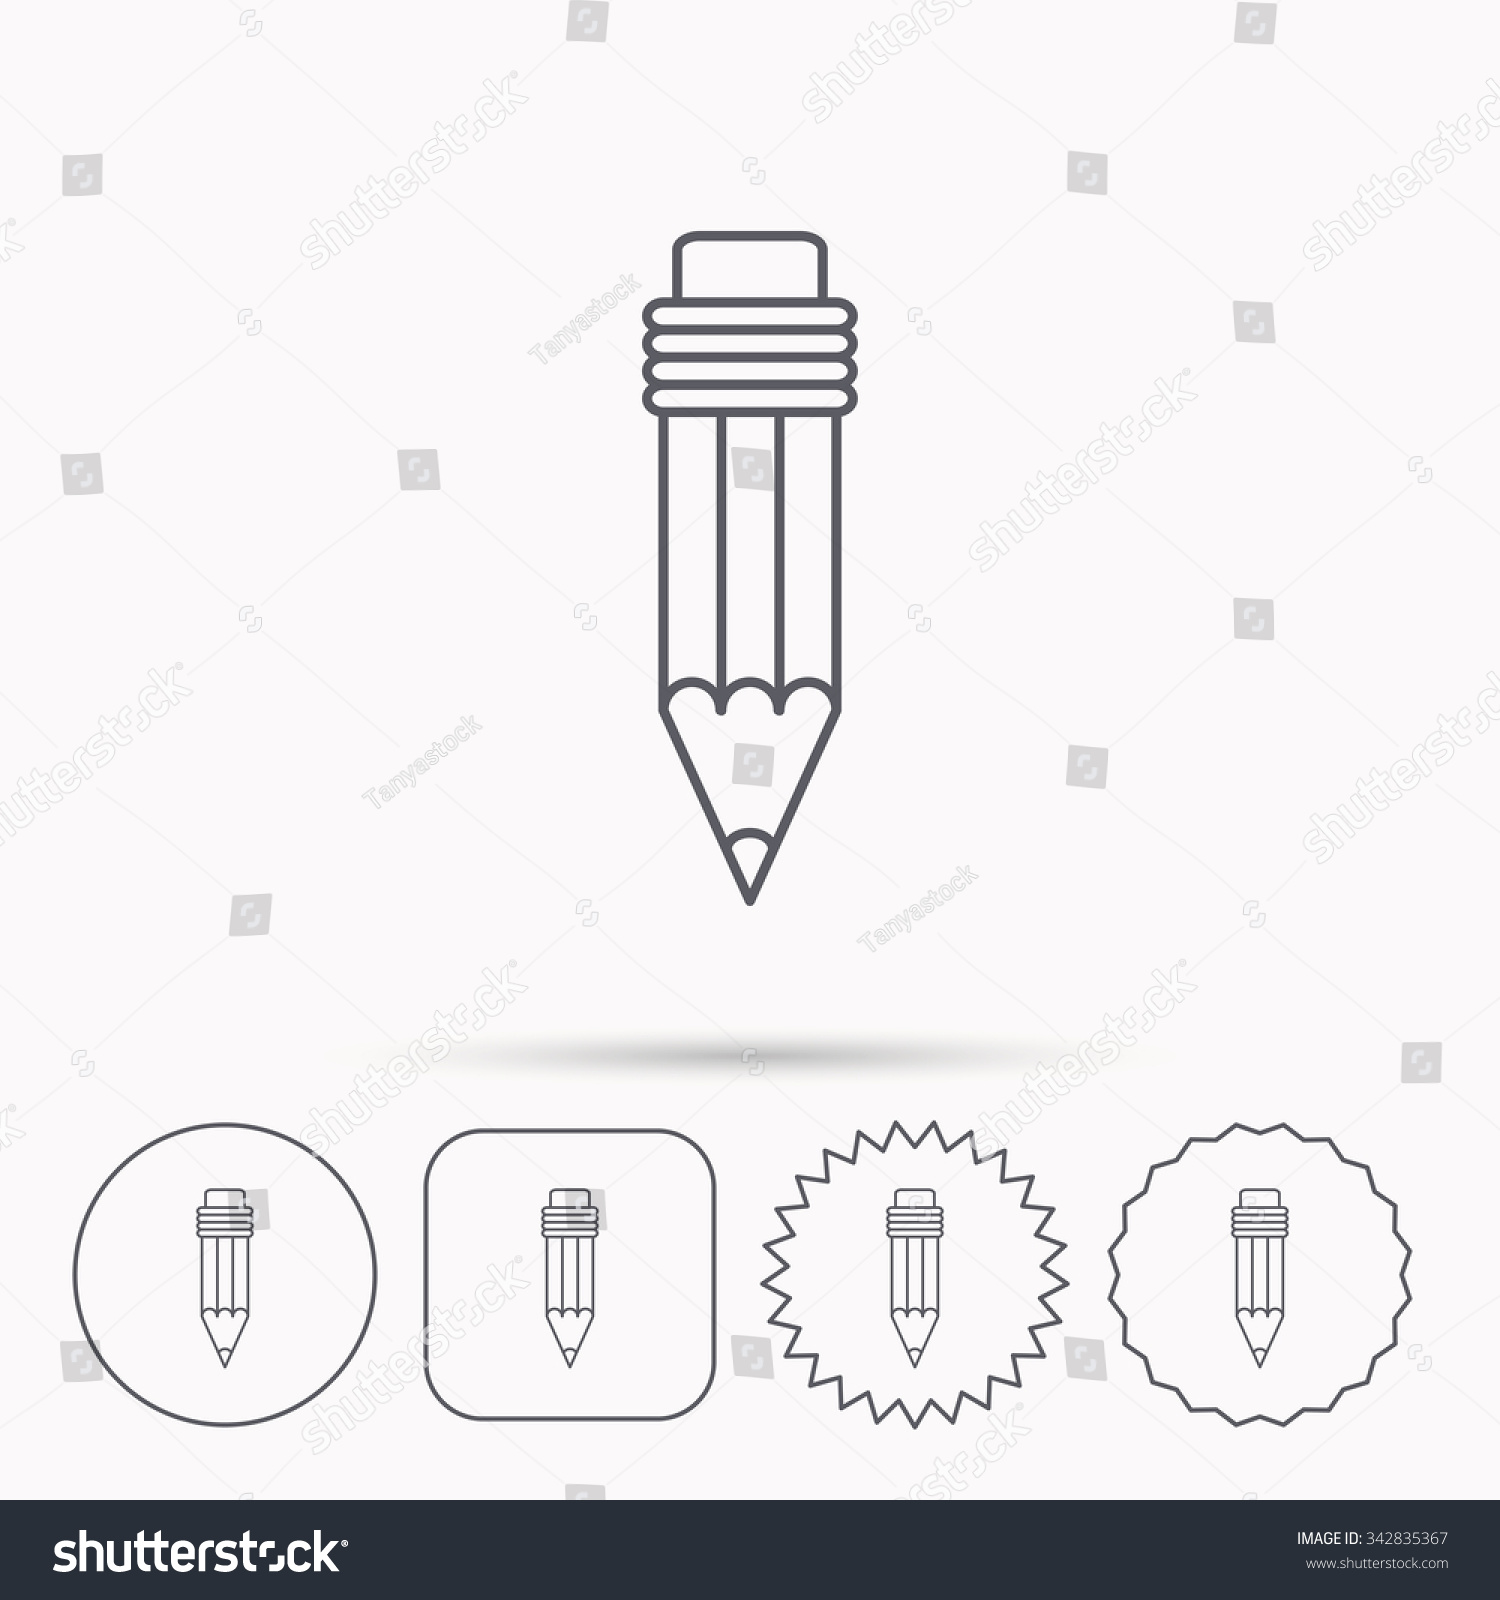 Pencil Icon Drawing Tool Sign Linear Stock Vector 342835367 ...